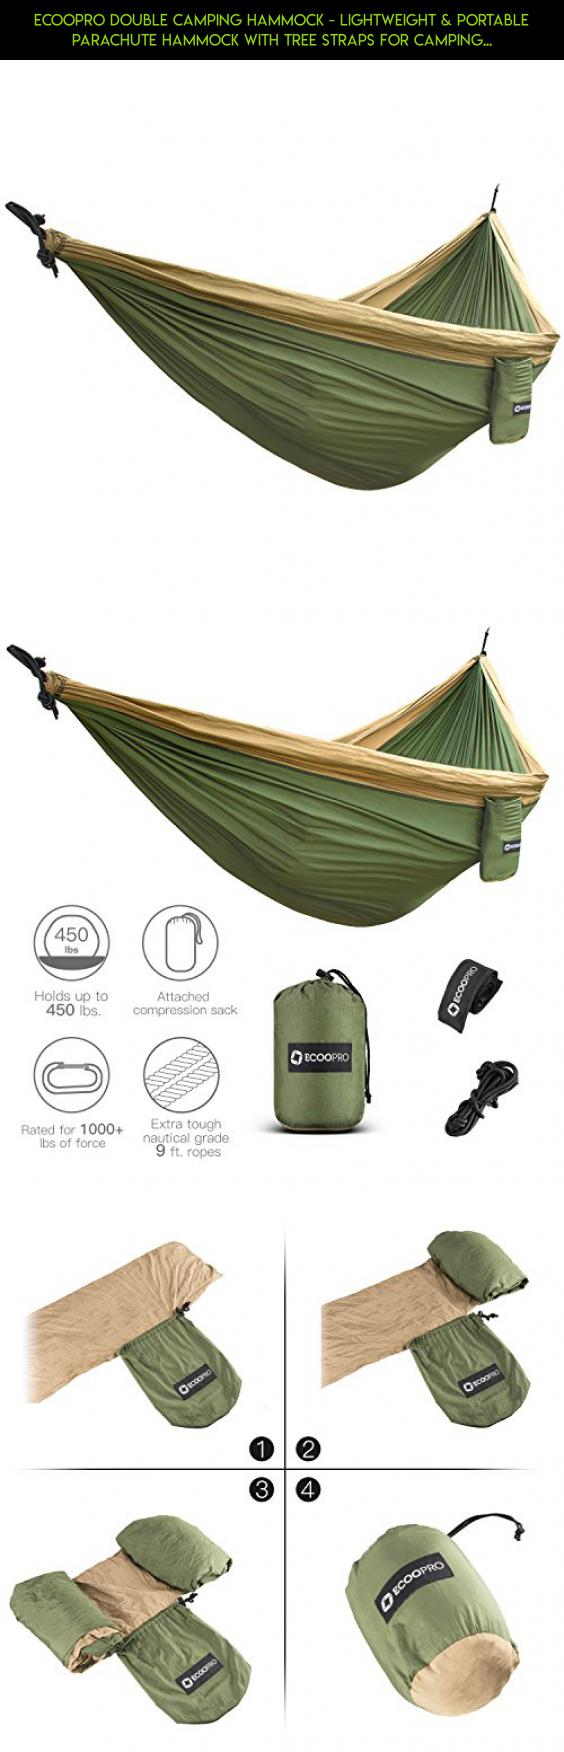 ... Parachute Hammock With Tree Straps For Camping, Backpacking, Travel,  Beach, Yard #technology #products #camera #kit #plans #shopping #parts  #tech #drone ...